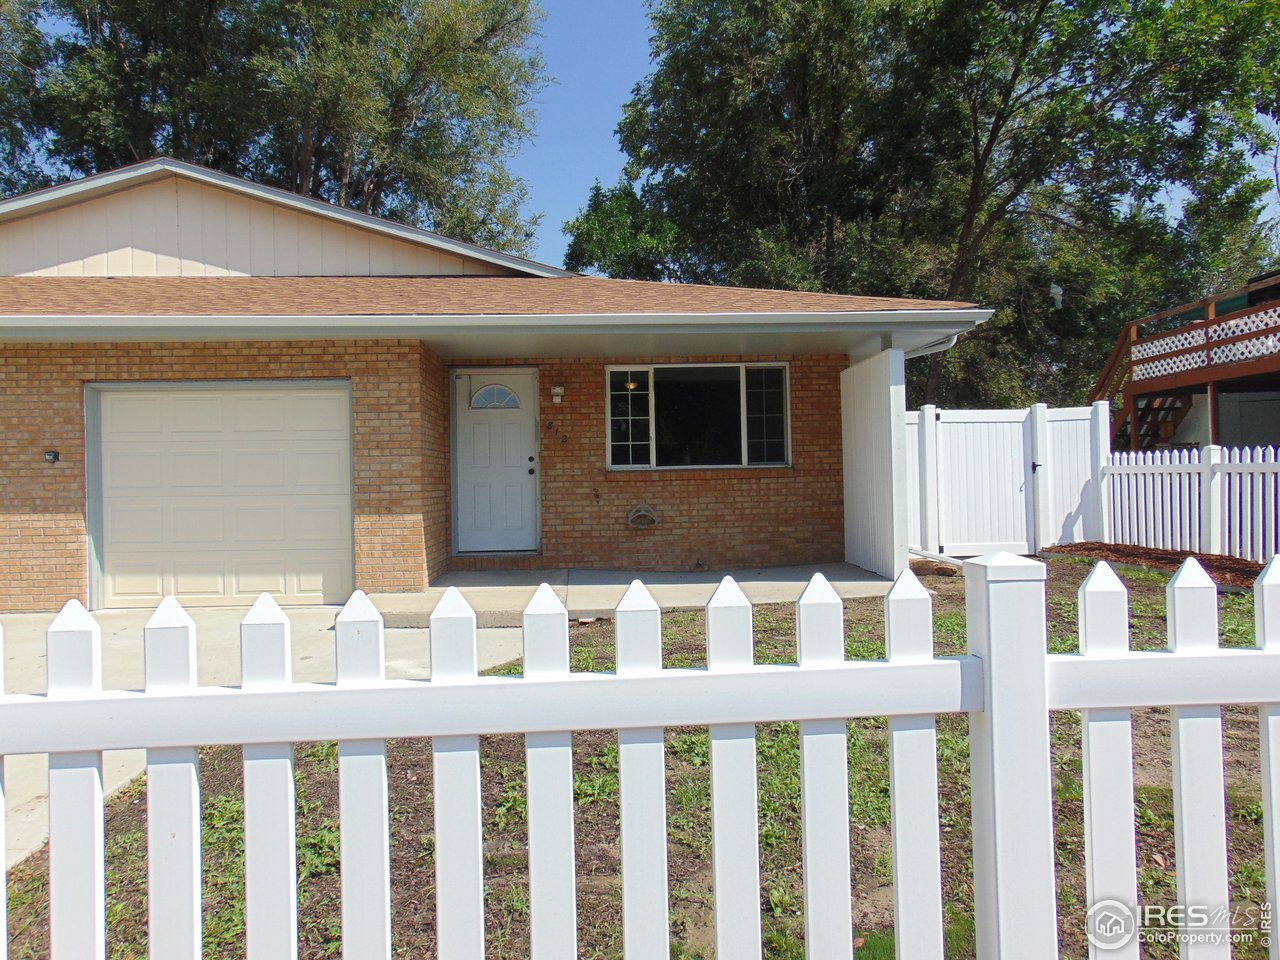 Front with new front picket fence and new driveway. New privacy fence on side and back